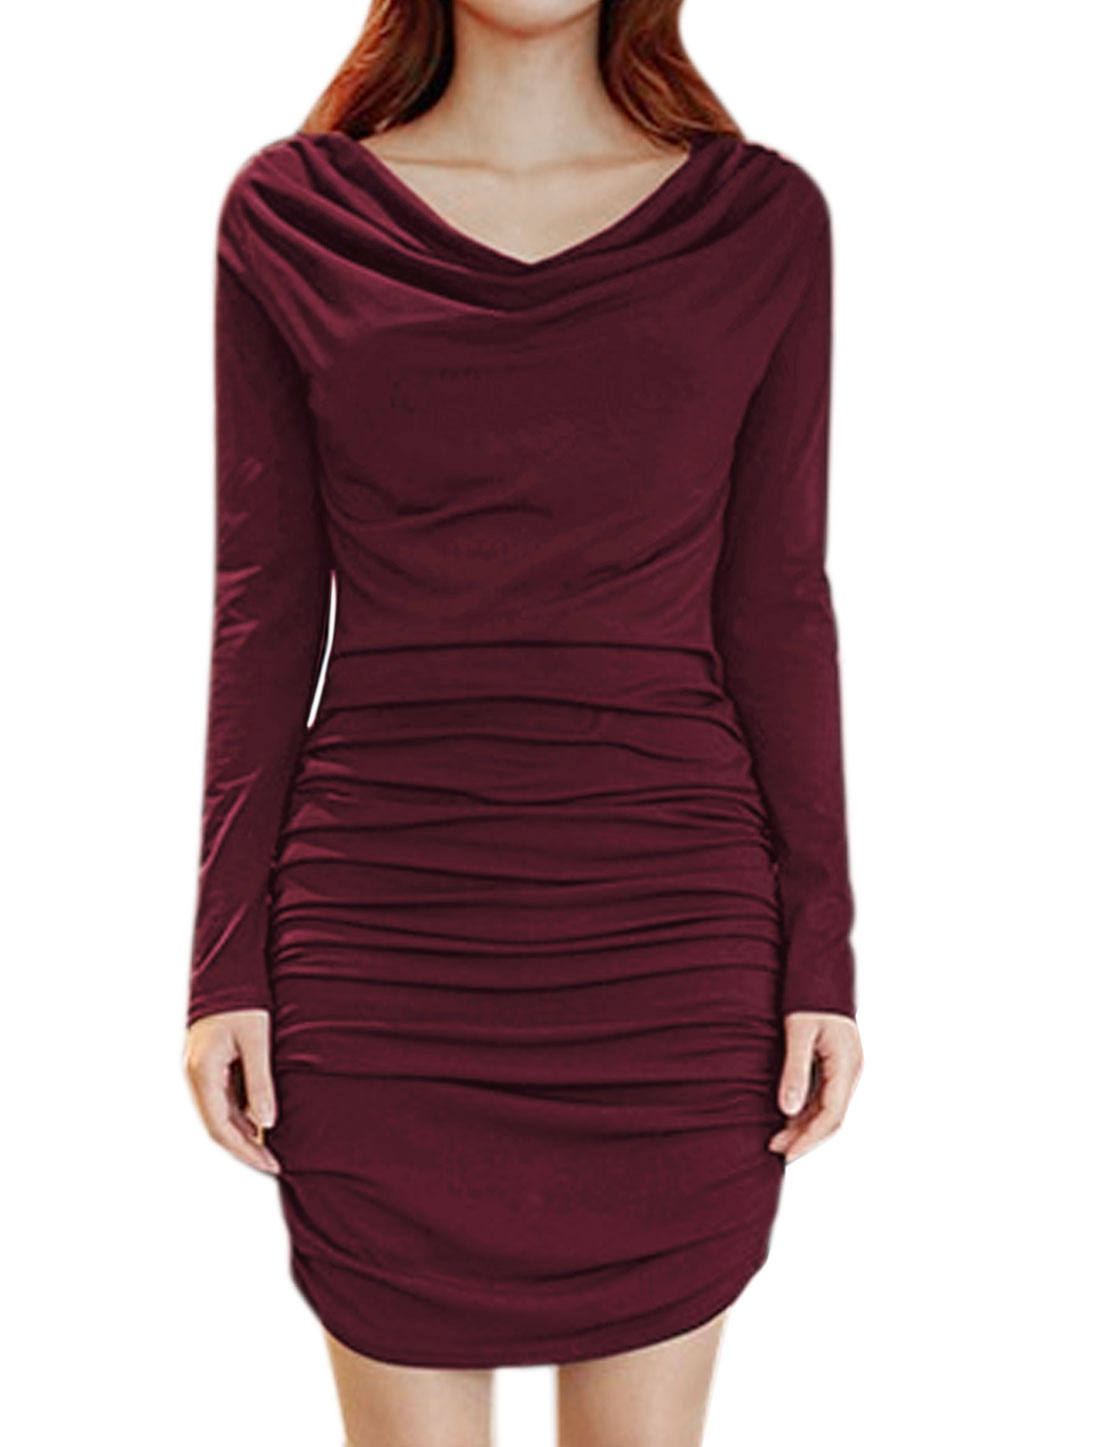 Women Cowl Neck Two-Way Wearing Mini Ruched Bodycon Dress Purple XS